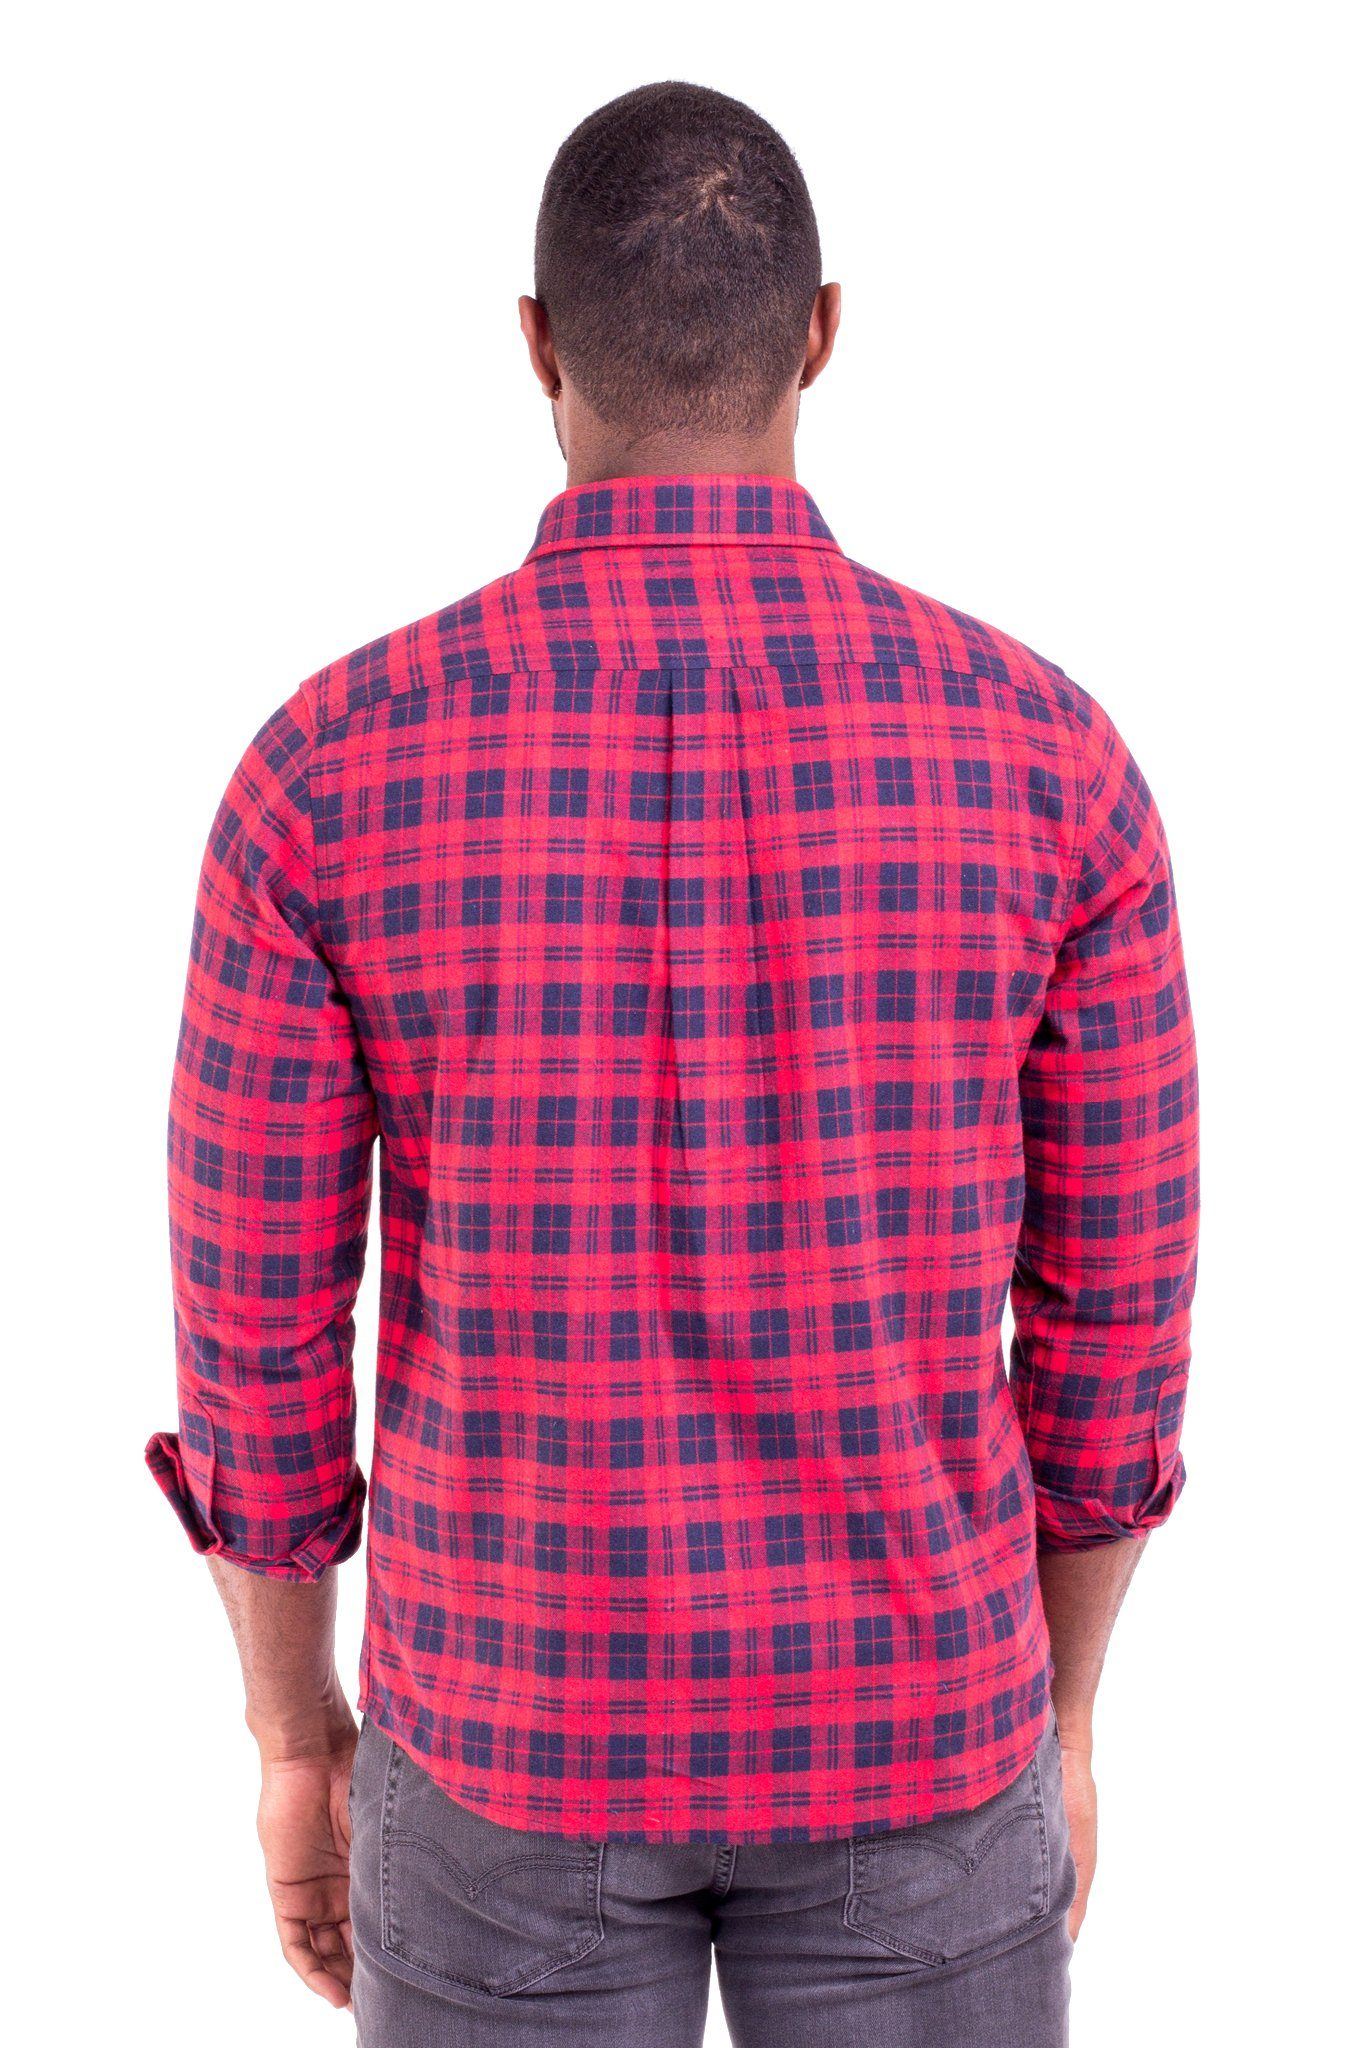 """JOHNNY"" RED/BLUE PLAID FLANNEL SHIRT - Poor Little Rich Boy"